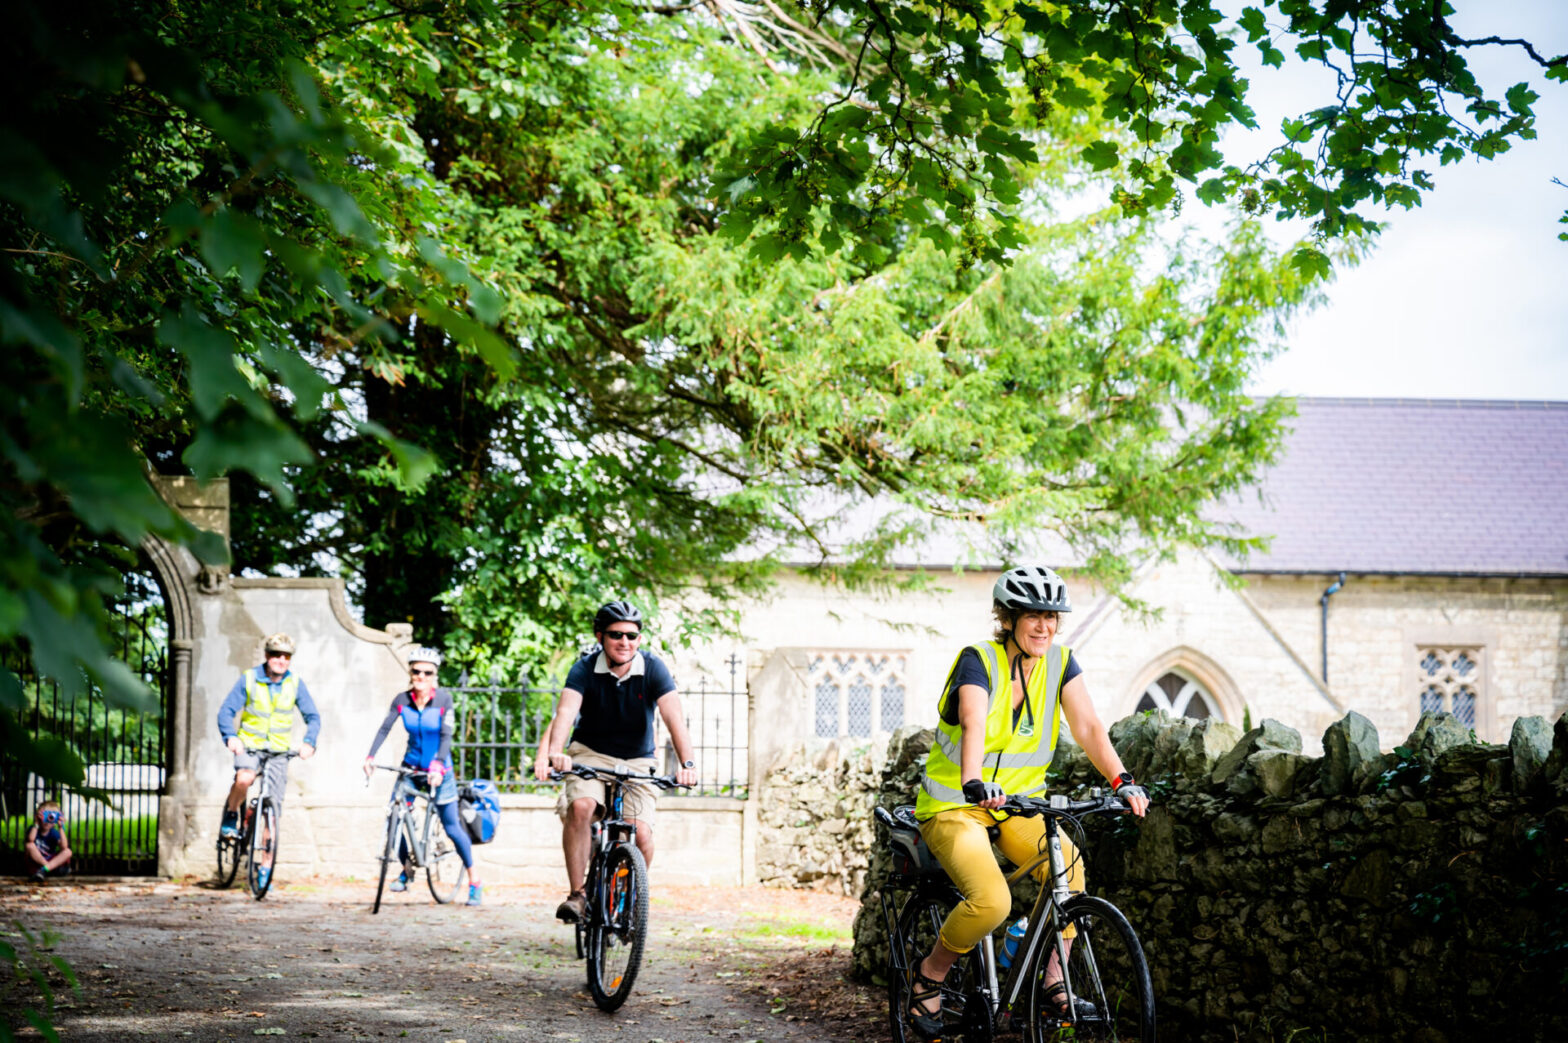 A group of cyclists cycle with a church in the background